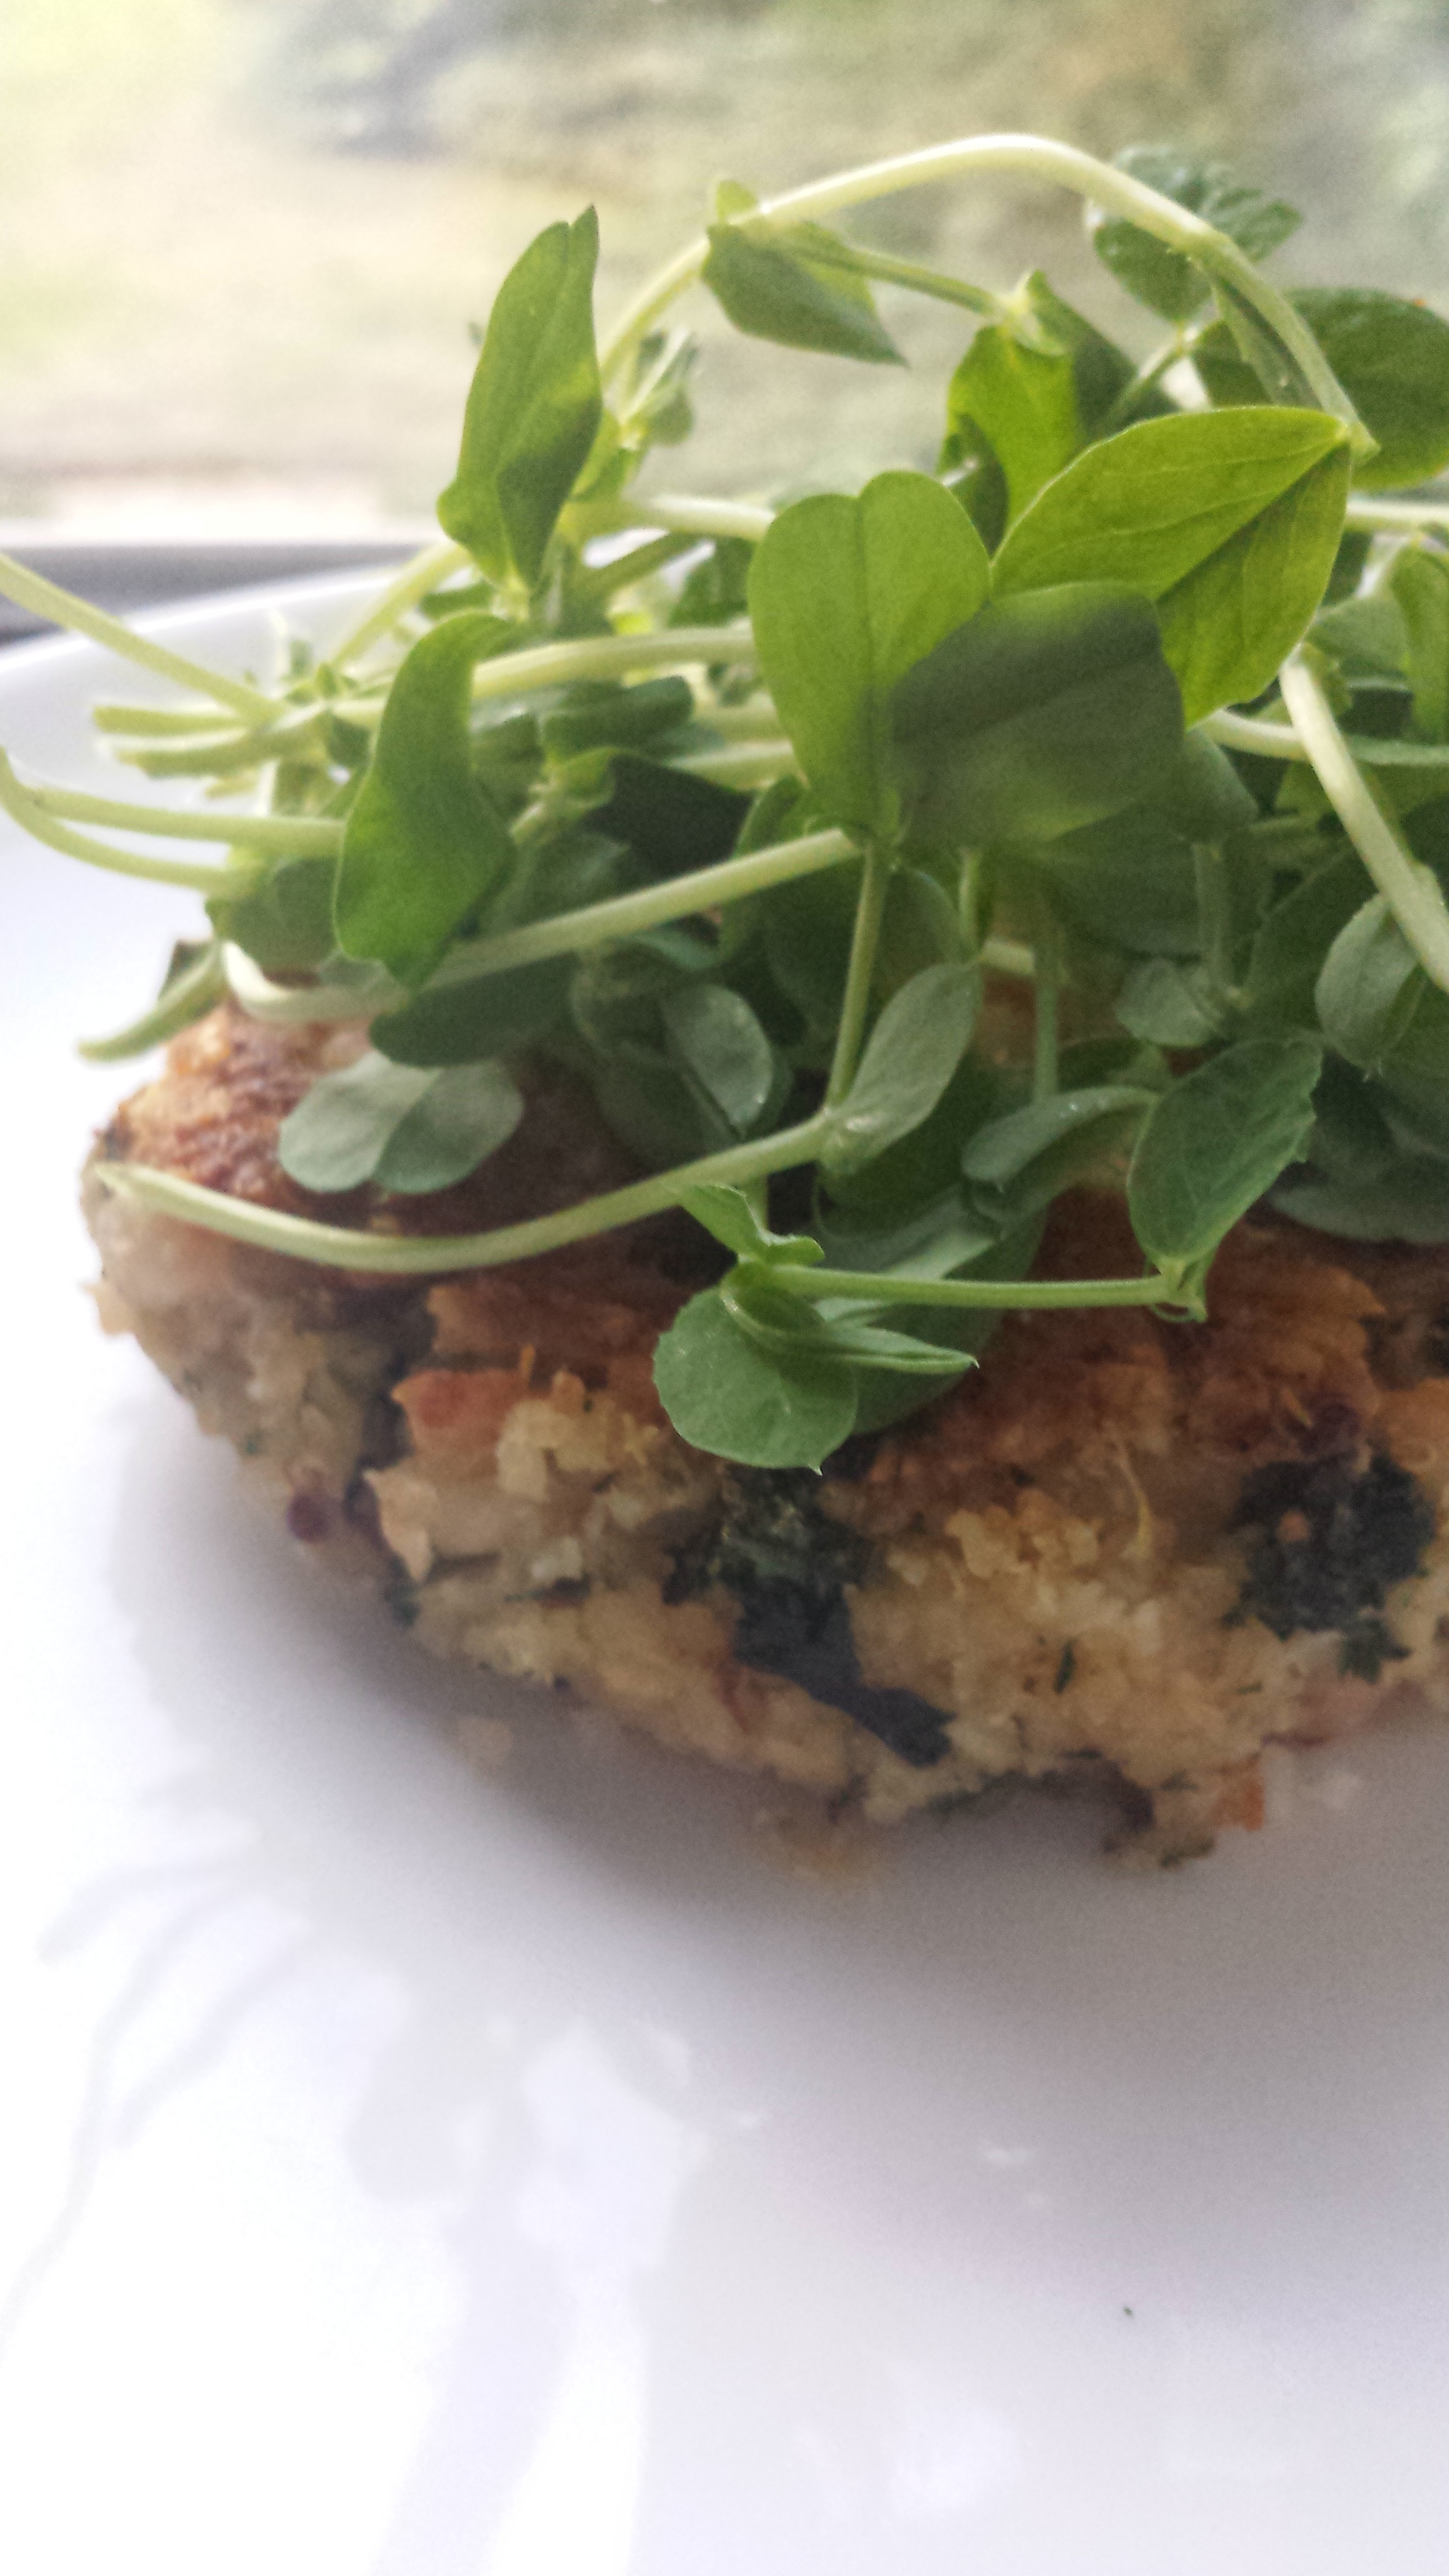 - ingredients3 cups white navy beans (about 1 cup dry, or 2 cans)½ cup almond flour (also known as almond meal)3 cloves of garlic3 tbsp chopped herbs (I used parsley and dill)2 tbsp chopped onion3 cups raw kale + 1 tbsp coconut oil for sautéing2 cups cooked quinoa (to make: 1 cup dry quinoa added to 2 cups boiling water.Turn the heat right down, cover, continue to cook until all the water has been absorbed, let sit for a couple minutes and then fluff with a fork. Done)½ tsp cumin¼ tsp coriander1 tbsp Dijon mustardjuice from one lemon1 tsp salta few cracks of black pepperfew dashes of smoked paprika (if you like a bolder flavour, add more)1 eggmake it-if using dried beans, soak overnight (or at least 8 hours) and cook in a large pot of boiling water until they are soft, this usually takes about an hour. If using canned, drain and rinse.Add your beans to a food processor. Pulse the beans a few times to start breaking them down.-remove the thick inner ribbing in the kale and roughly chop into small ribbons. Heat 1 tbsp of coconut oil in a frying pan, and lightly sauté just until bright green. Take the pan off of the heat and set aside.-roughly chop the garlic and herbs and add to the food processor. Pulse a few times to combine.Add almond flour, onion, quinoa. On high, let the food processor run for a minute or two (depending on how powerful your food processor is) until all ingredients come together.-transfer contents in the food processor to a large bowl and add the sautéed kale. Add in spices, Dijon, lemon juice and egg. Mix everything until well combined.-form mixture into 8 burgers. To serve, heat a dollop of coconut oil in a cast iron pan and sauté on both sides until golden brown.